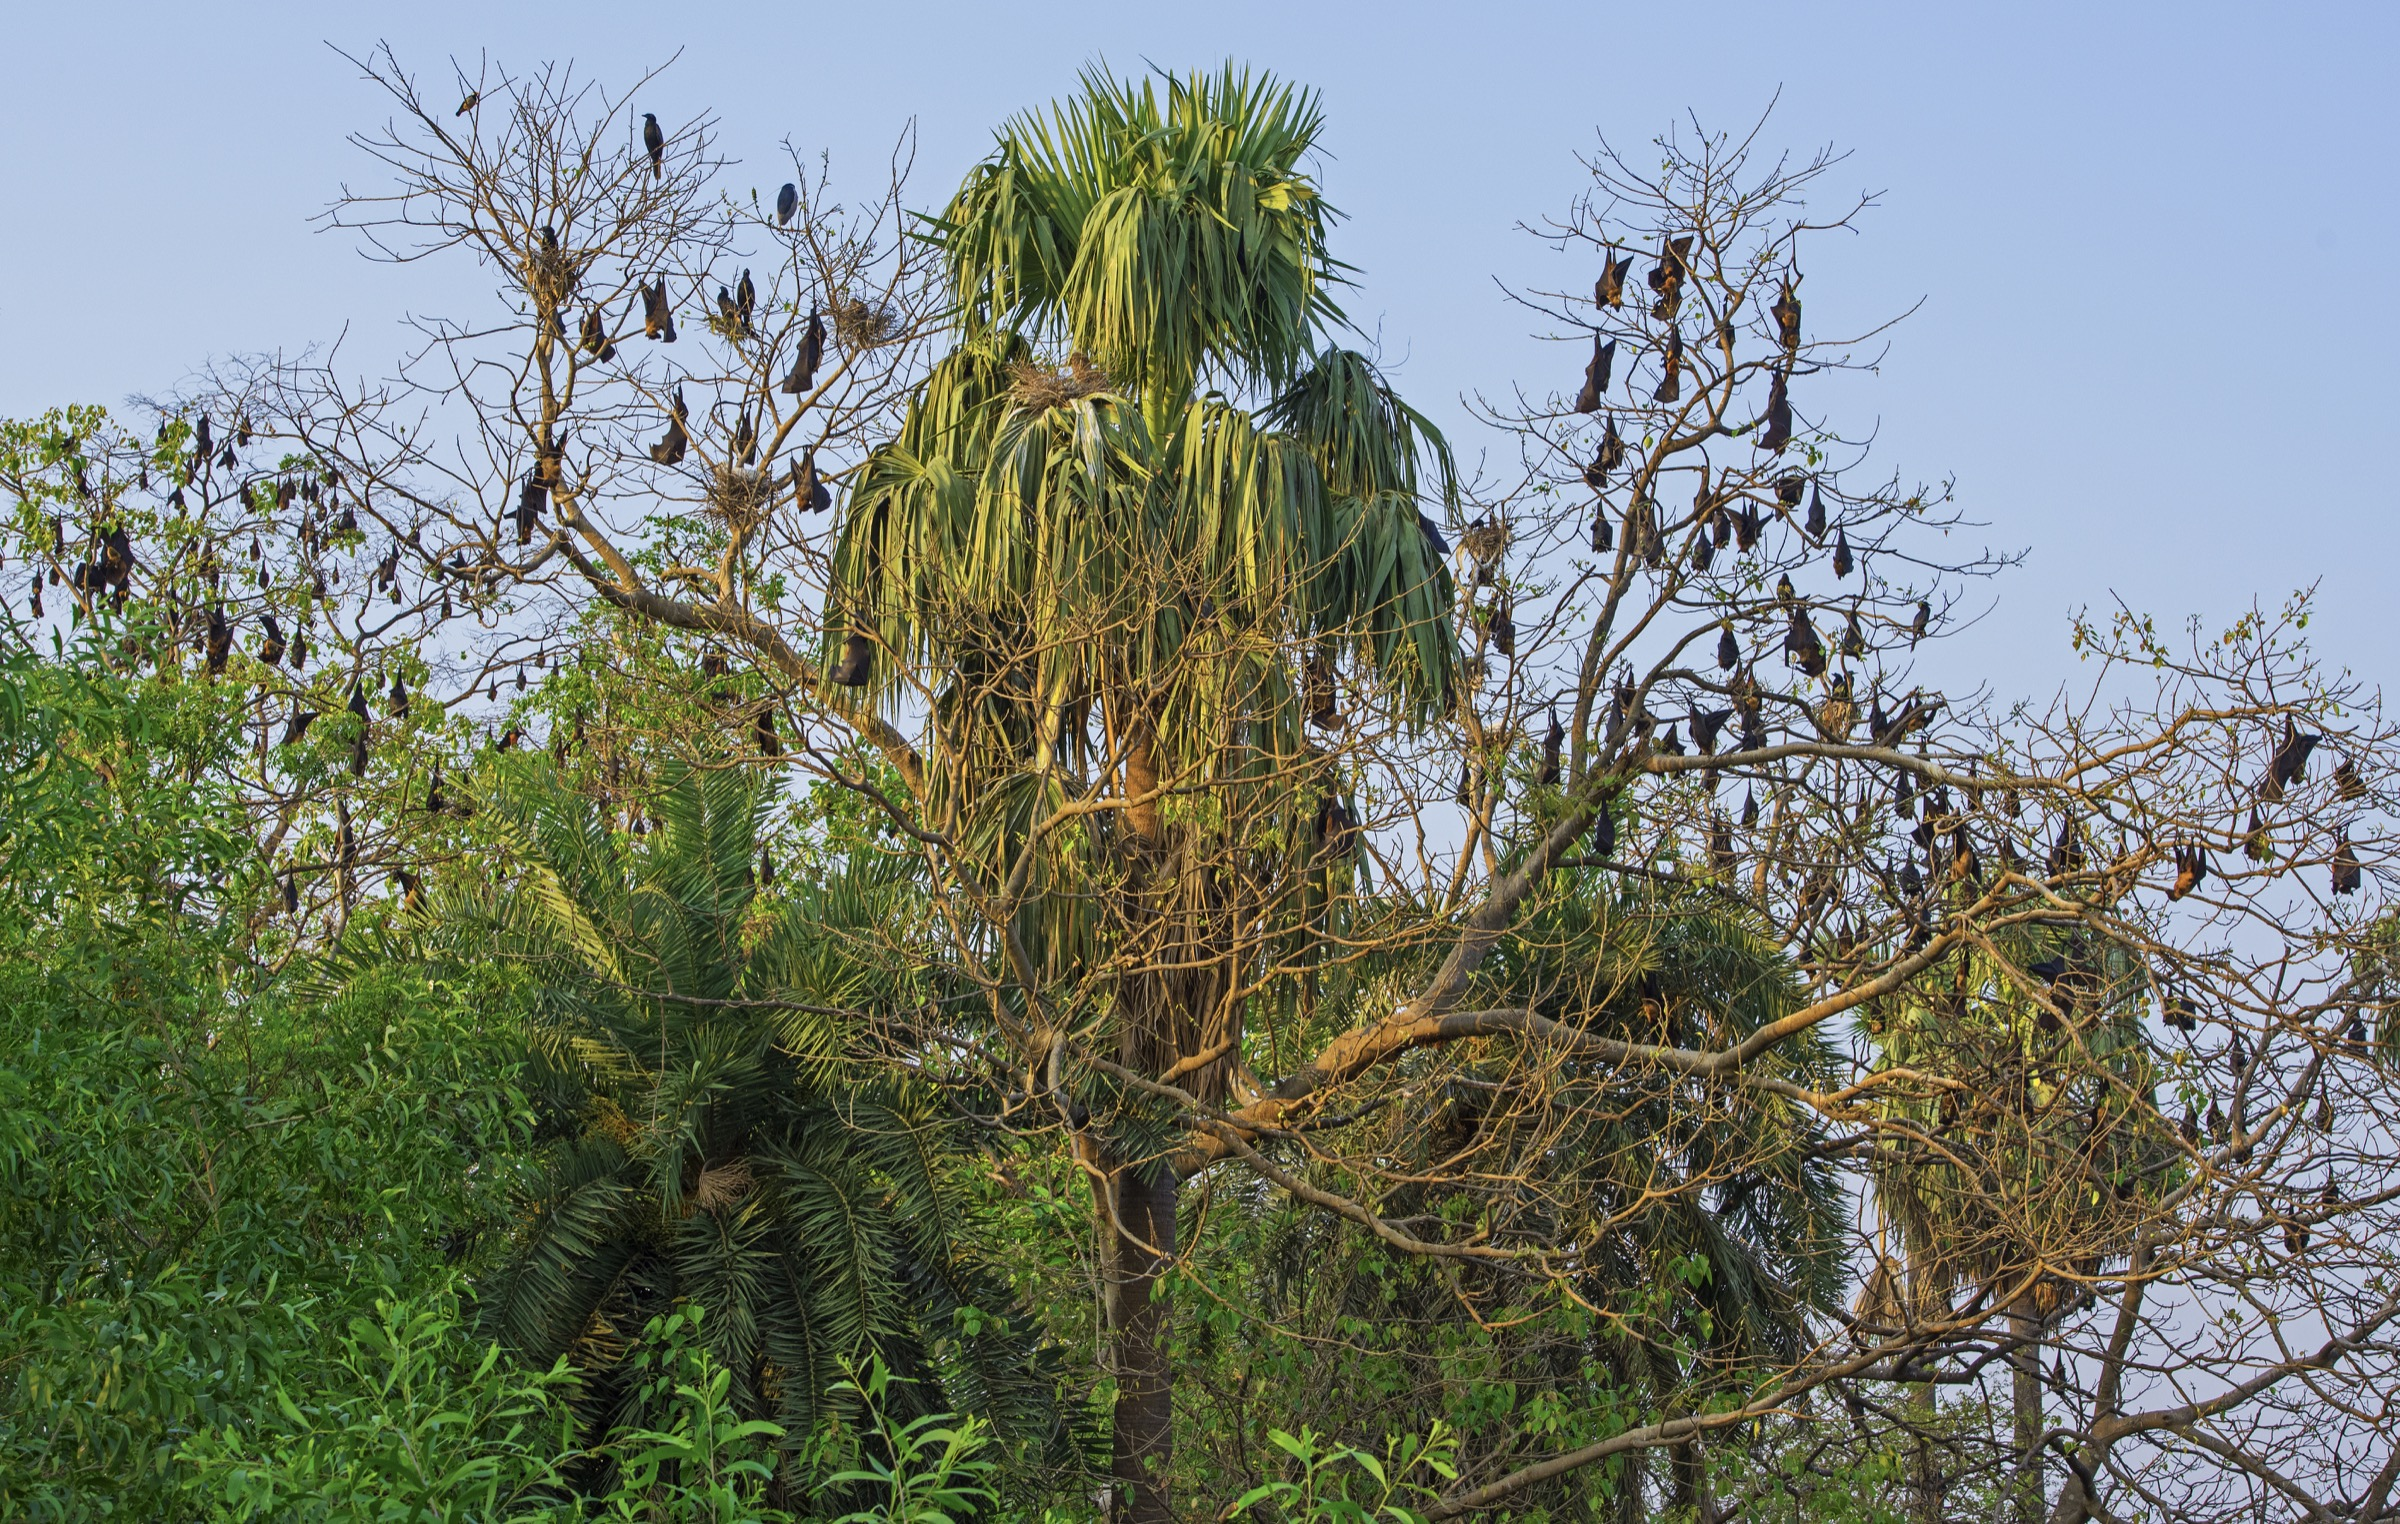 Indian flying foxes (<em>Pteropus medius</em>) typically roost in groups like this colony photographed in India's West Bengal. These groups can number anywhere from several dozen to several hundreds. Photograph by Dhritiman Mukherjee